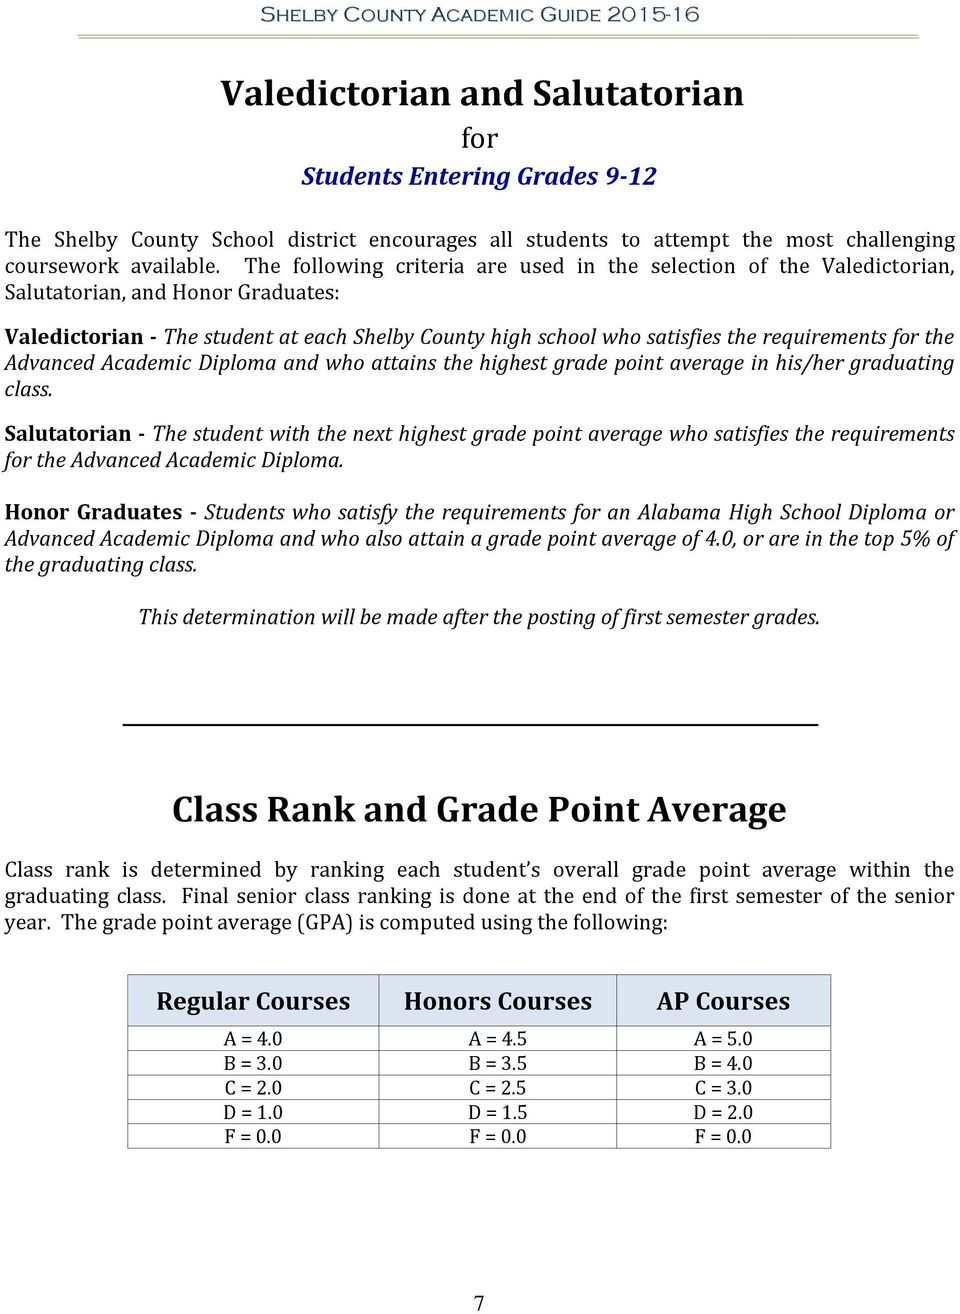 high school academic guide shelby county schools updated pdf rh docplayer net